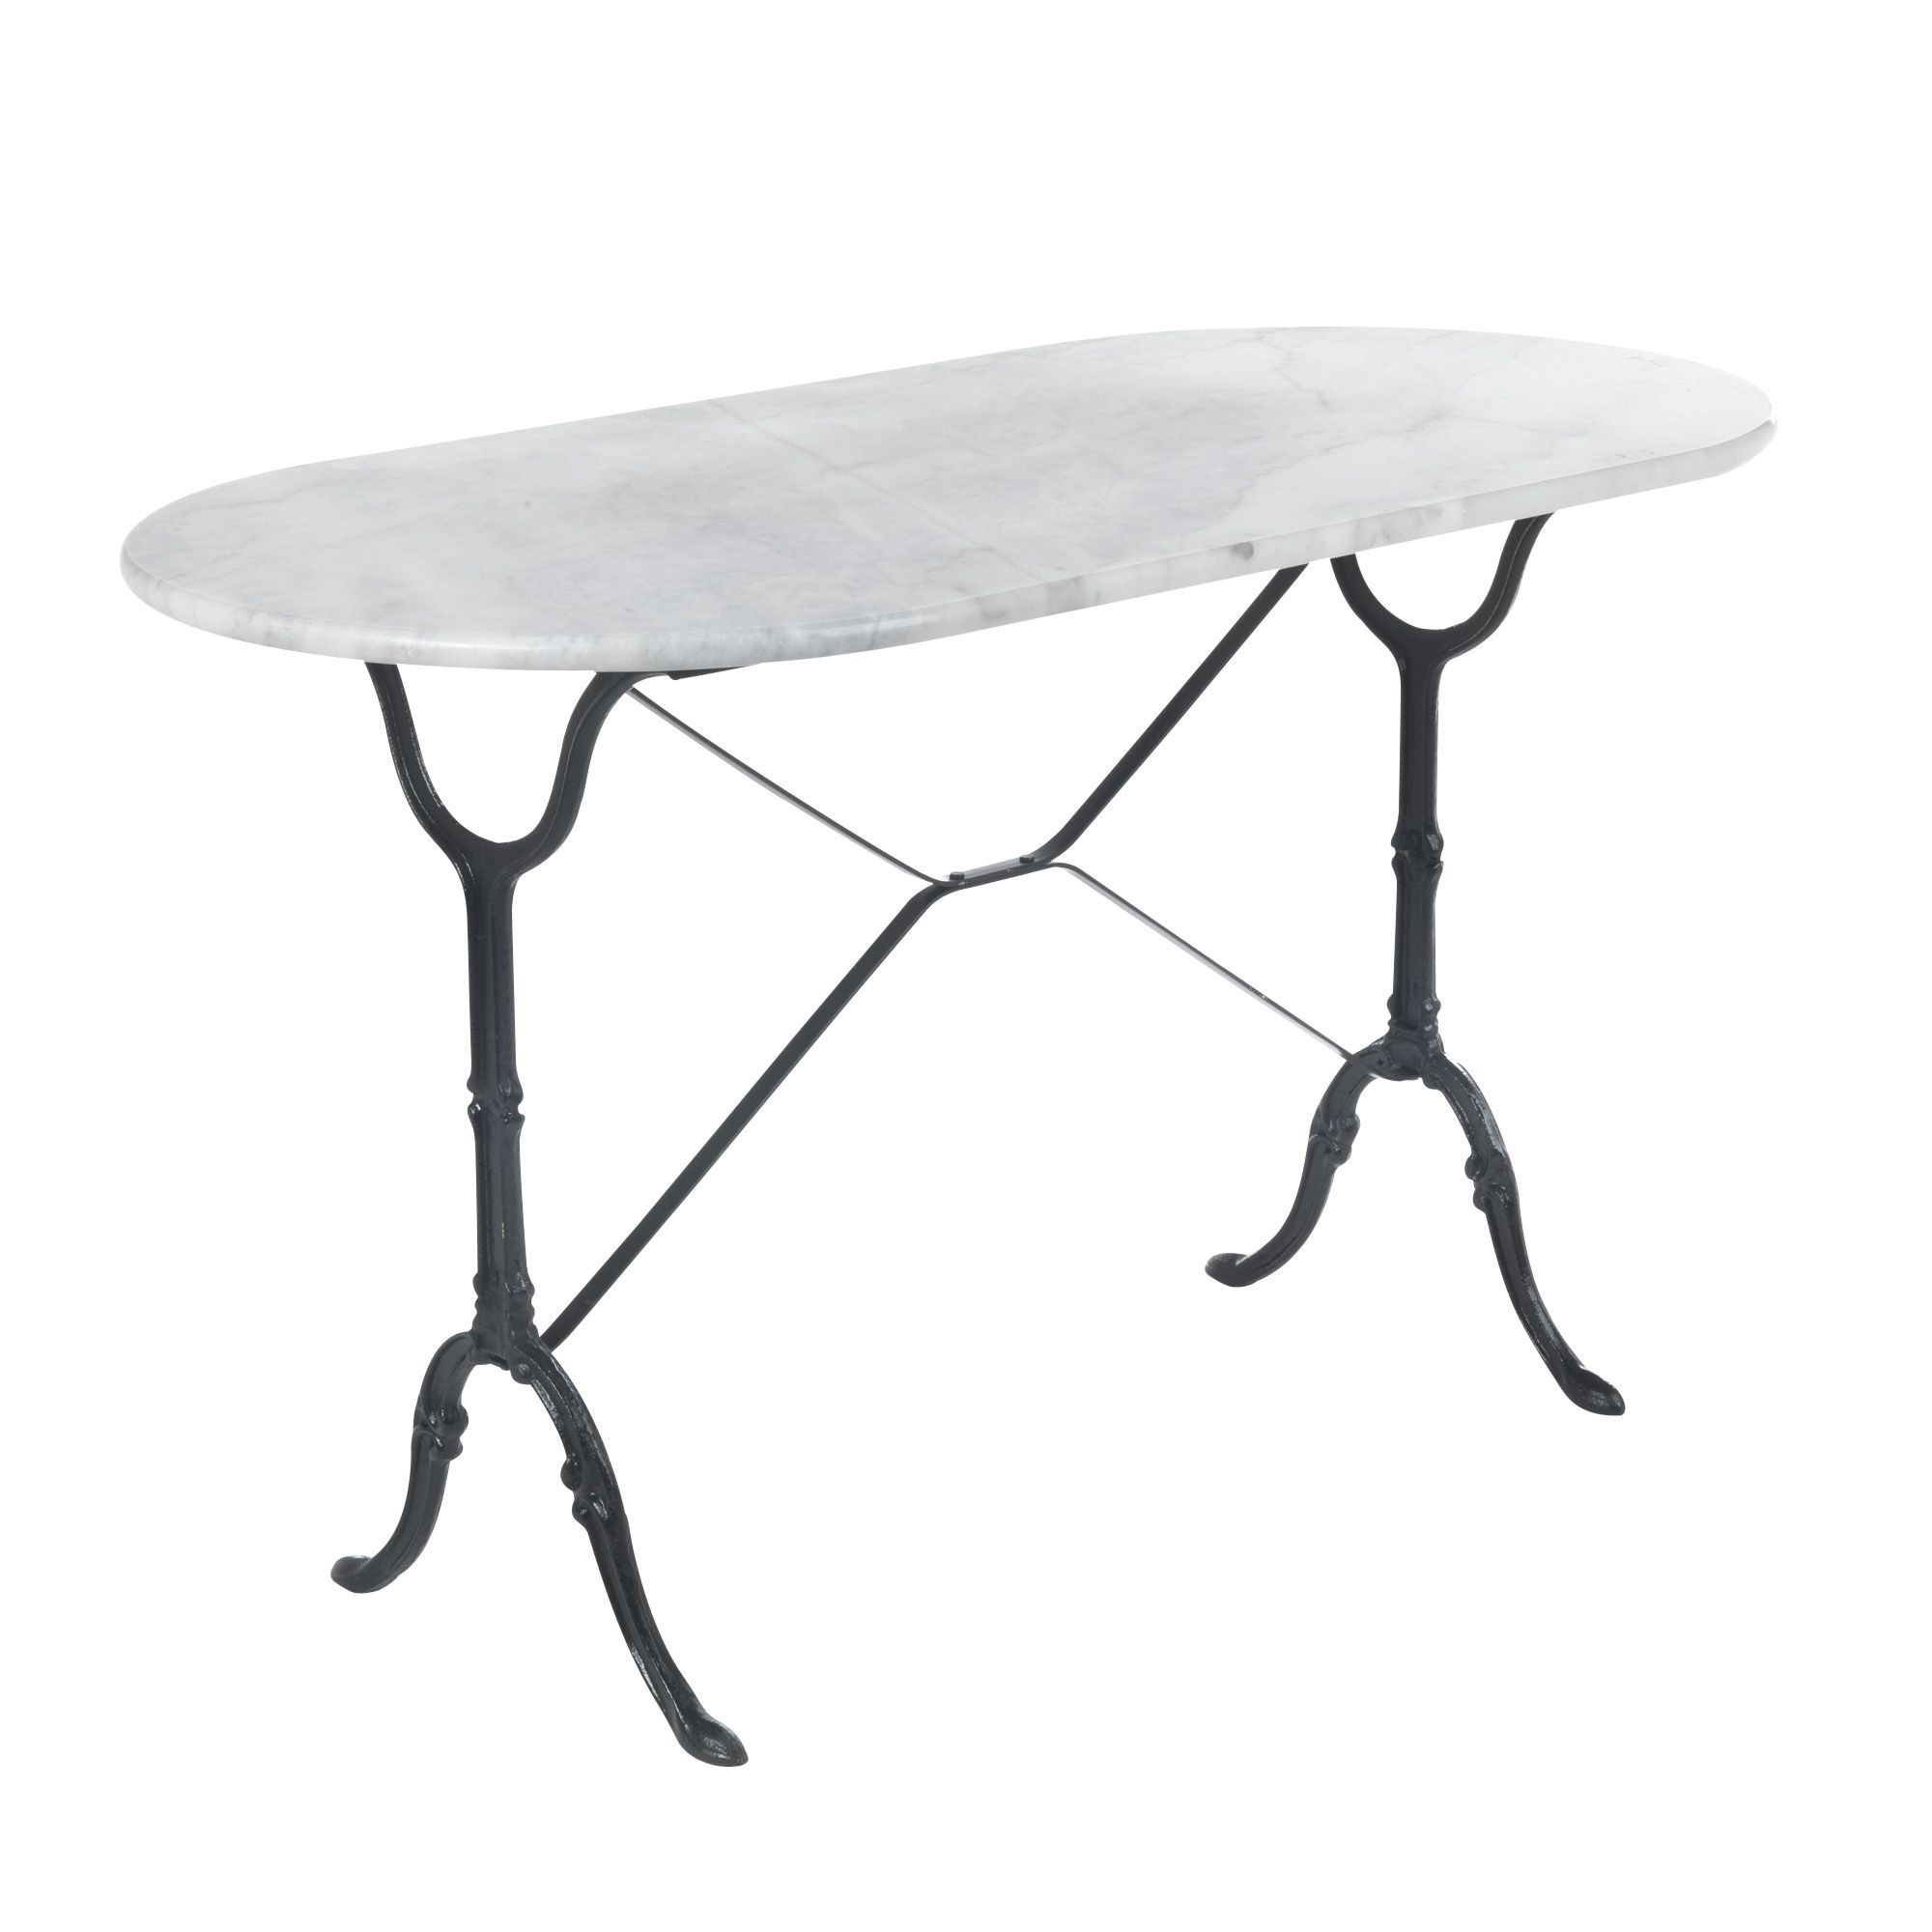 Table ovale en marbre blanc noir bistrot les tables de cuisine les meub - Table marbre conforama ...